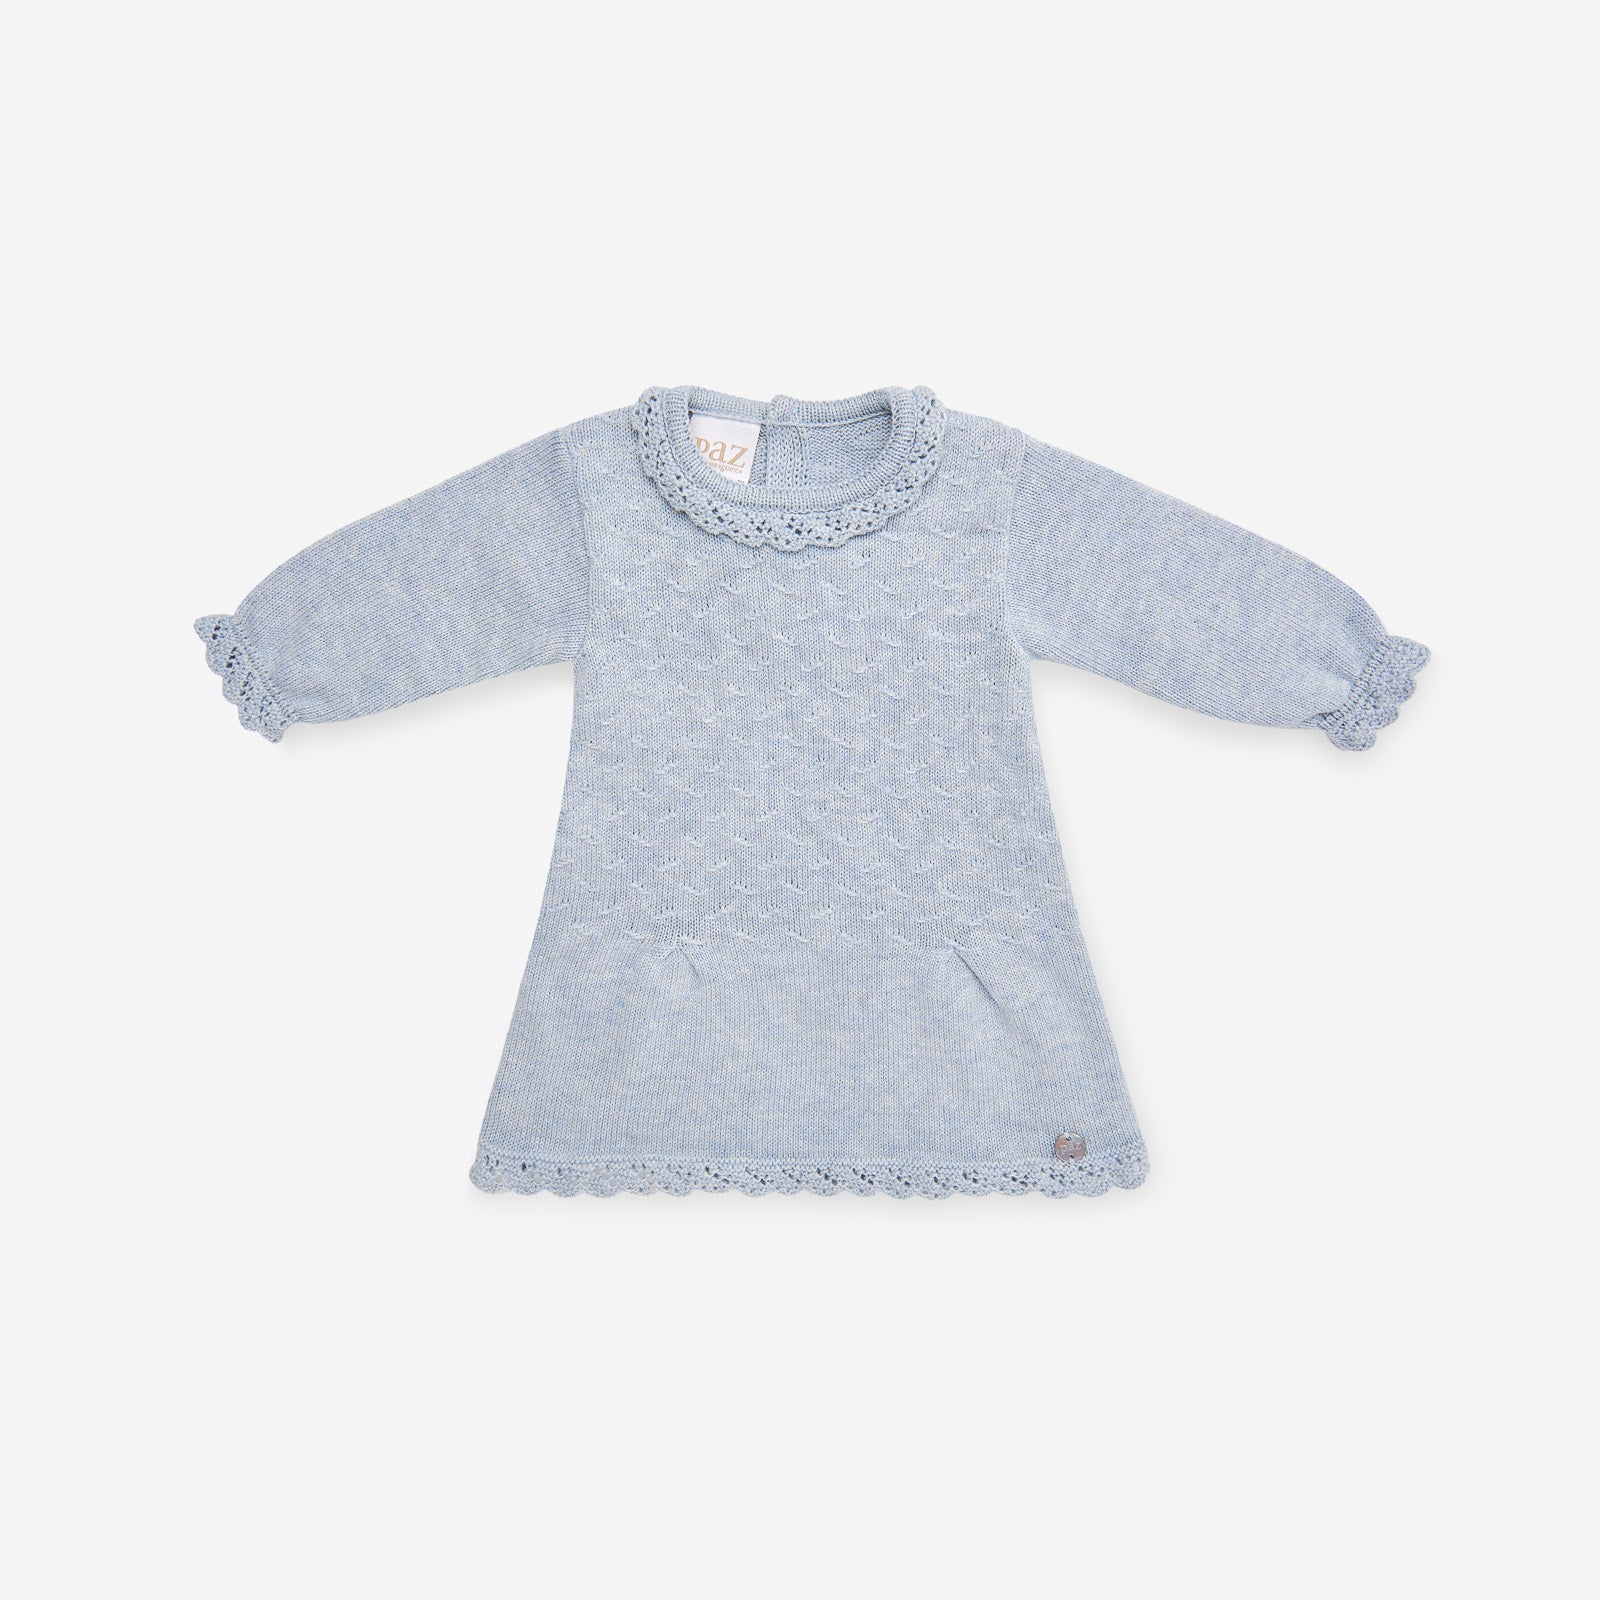 Paz Rodriguez Blue Knitted Dress